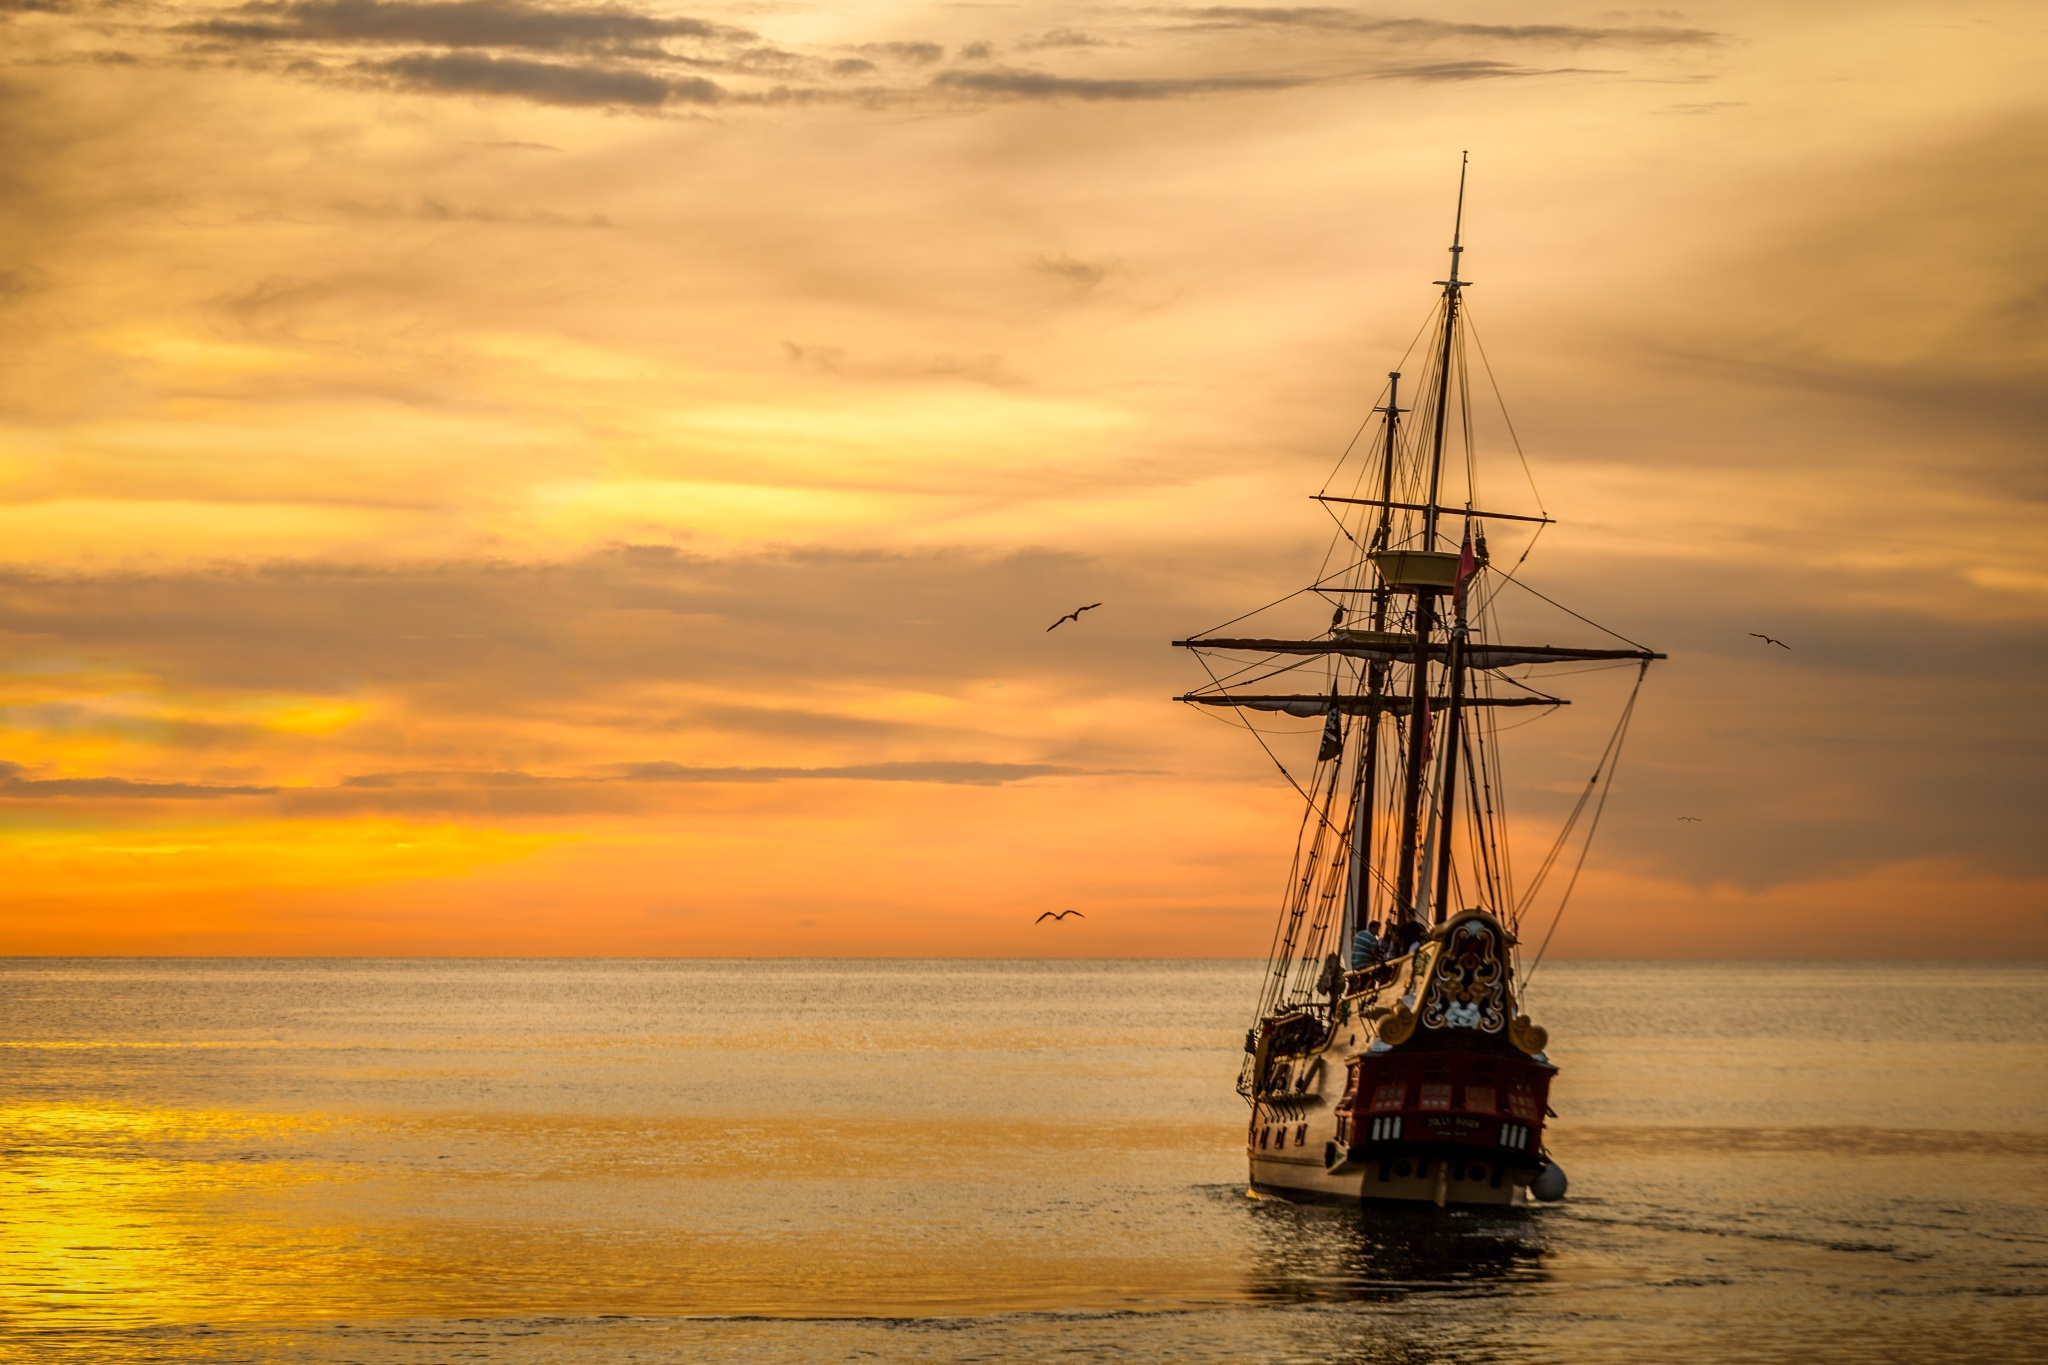 sunset-boat-sea-ship-37730